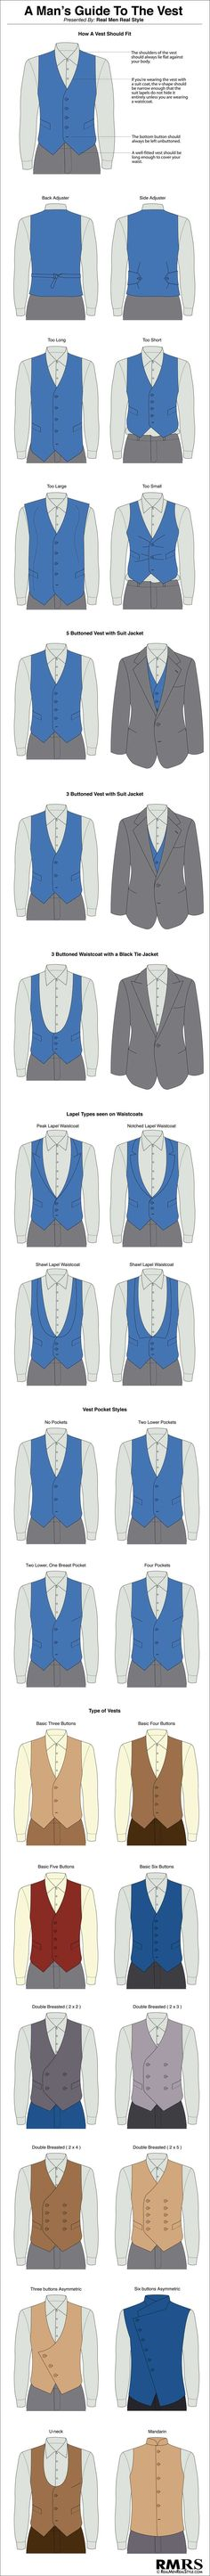 A-Mans-Guide-To-The-Vest-Infographic-700 #infographic #menstyle #menswear #guide #vests